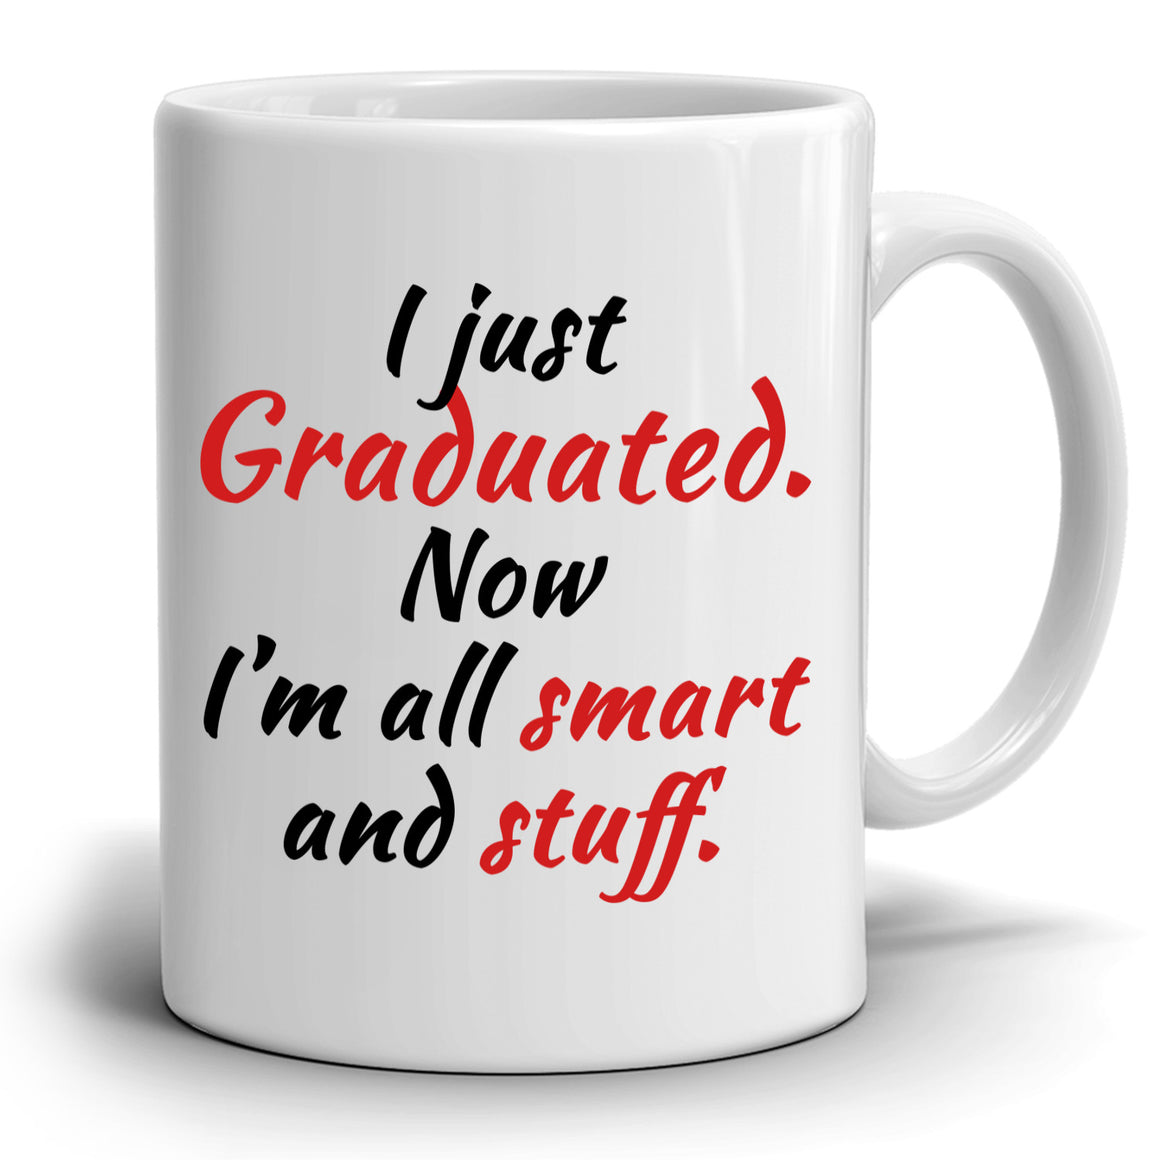 Funny I Just Graduated Graduation Gift Mug, Students Grad Gifts Coffee Cup, Printed on Both Side!